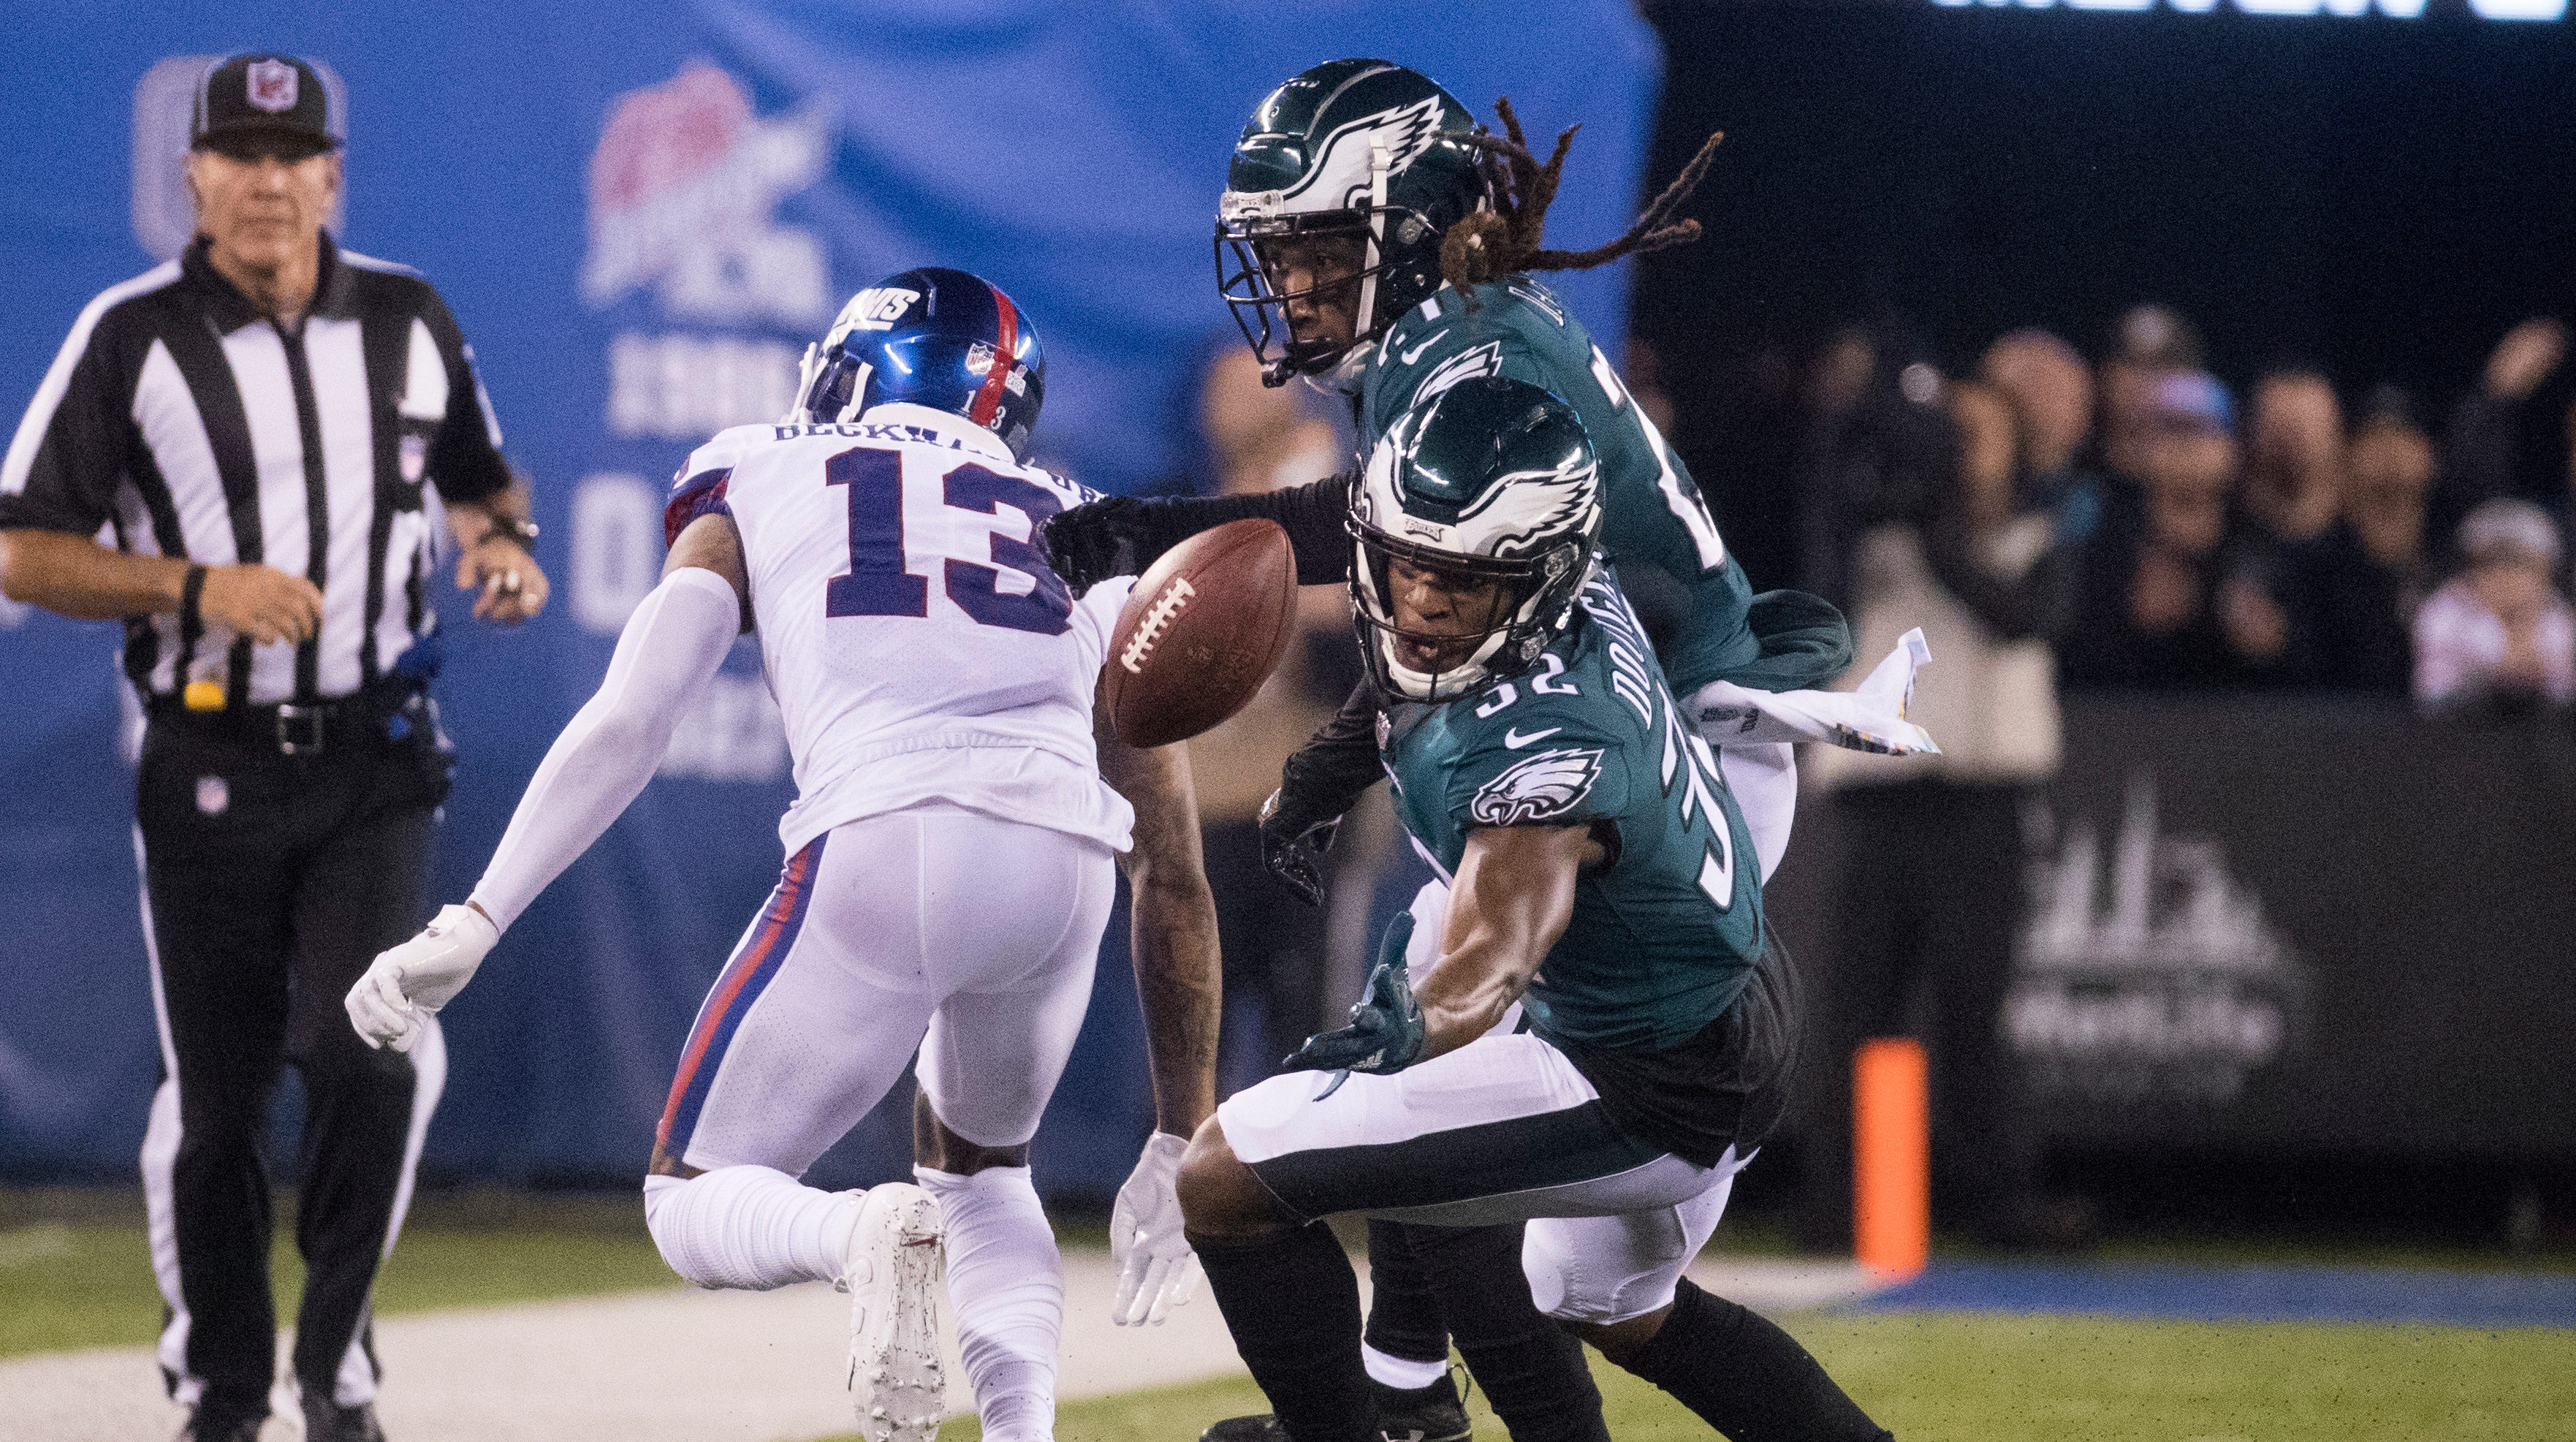 Rasul Douglas had never played safety before in the NFL before getting thrown out there against the Giants. Will he stay there?